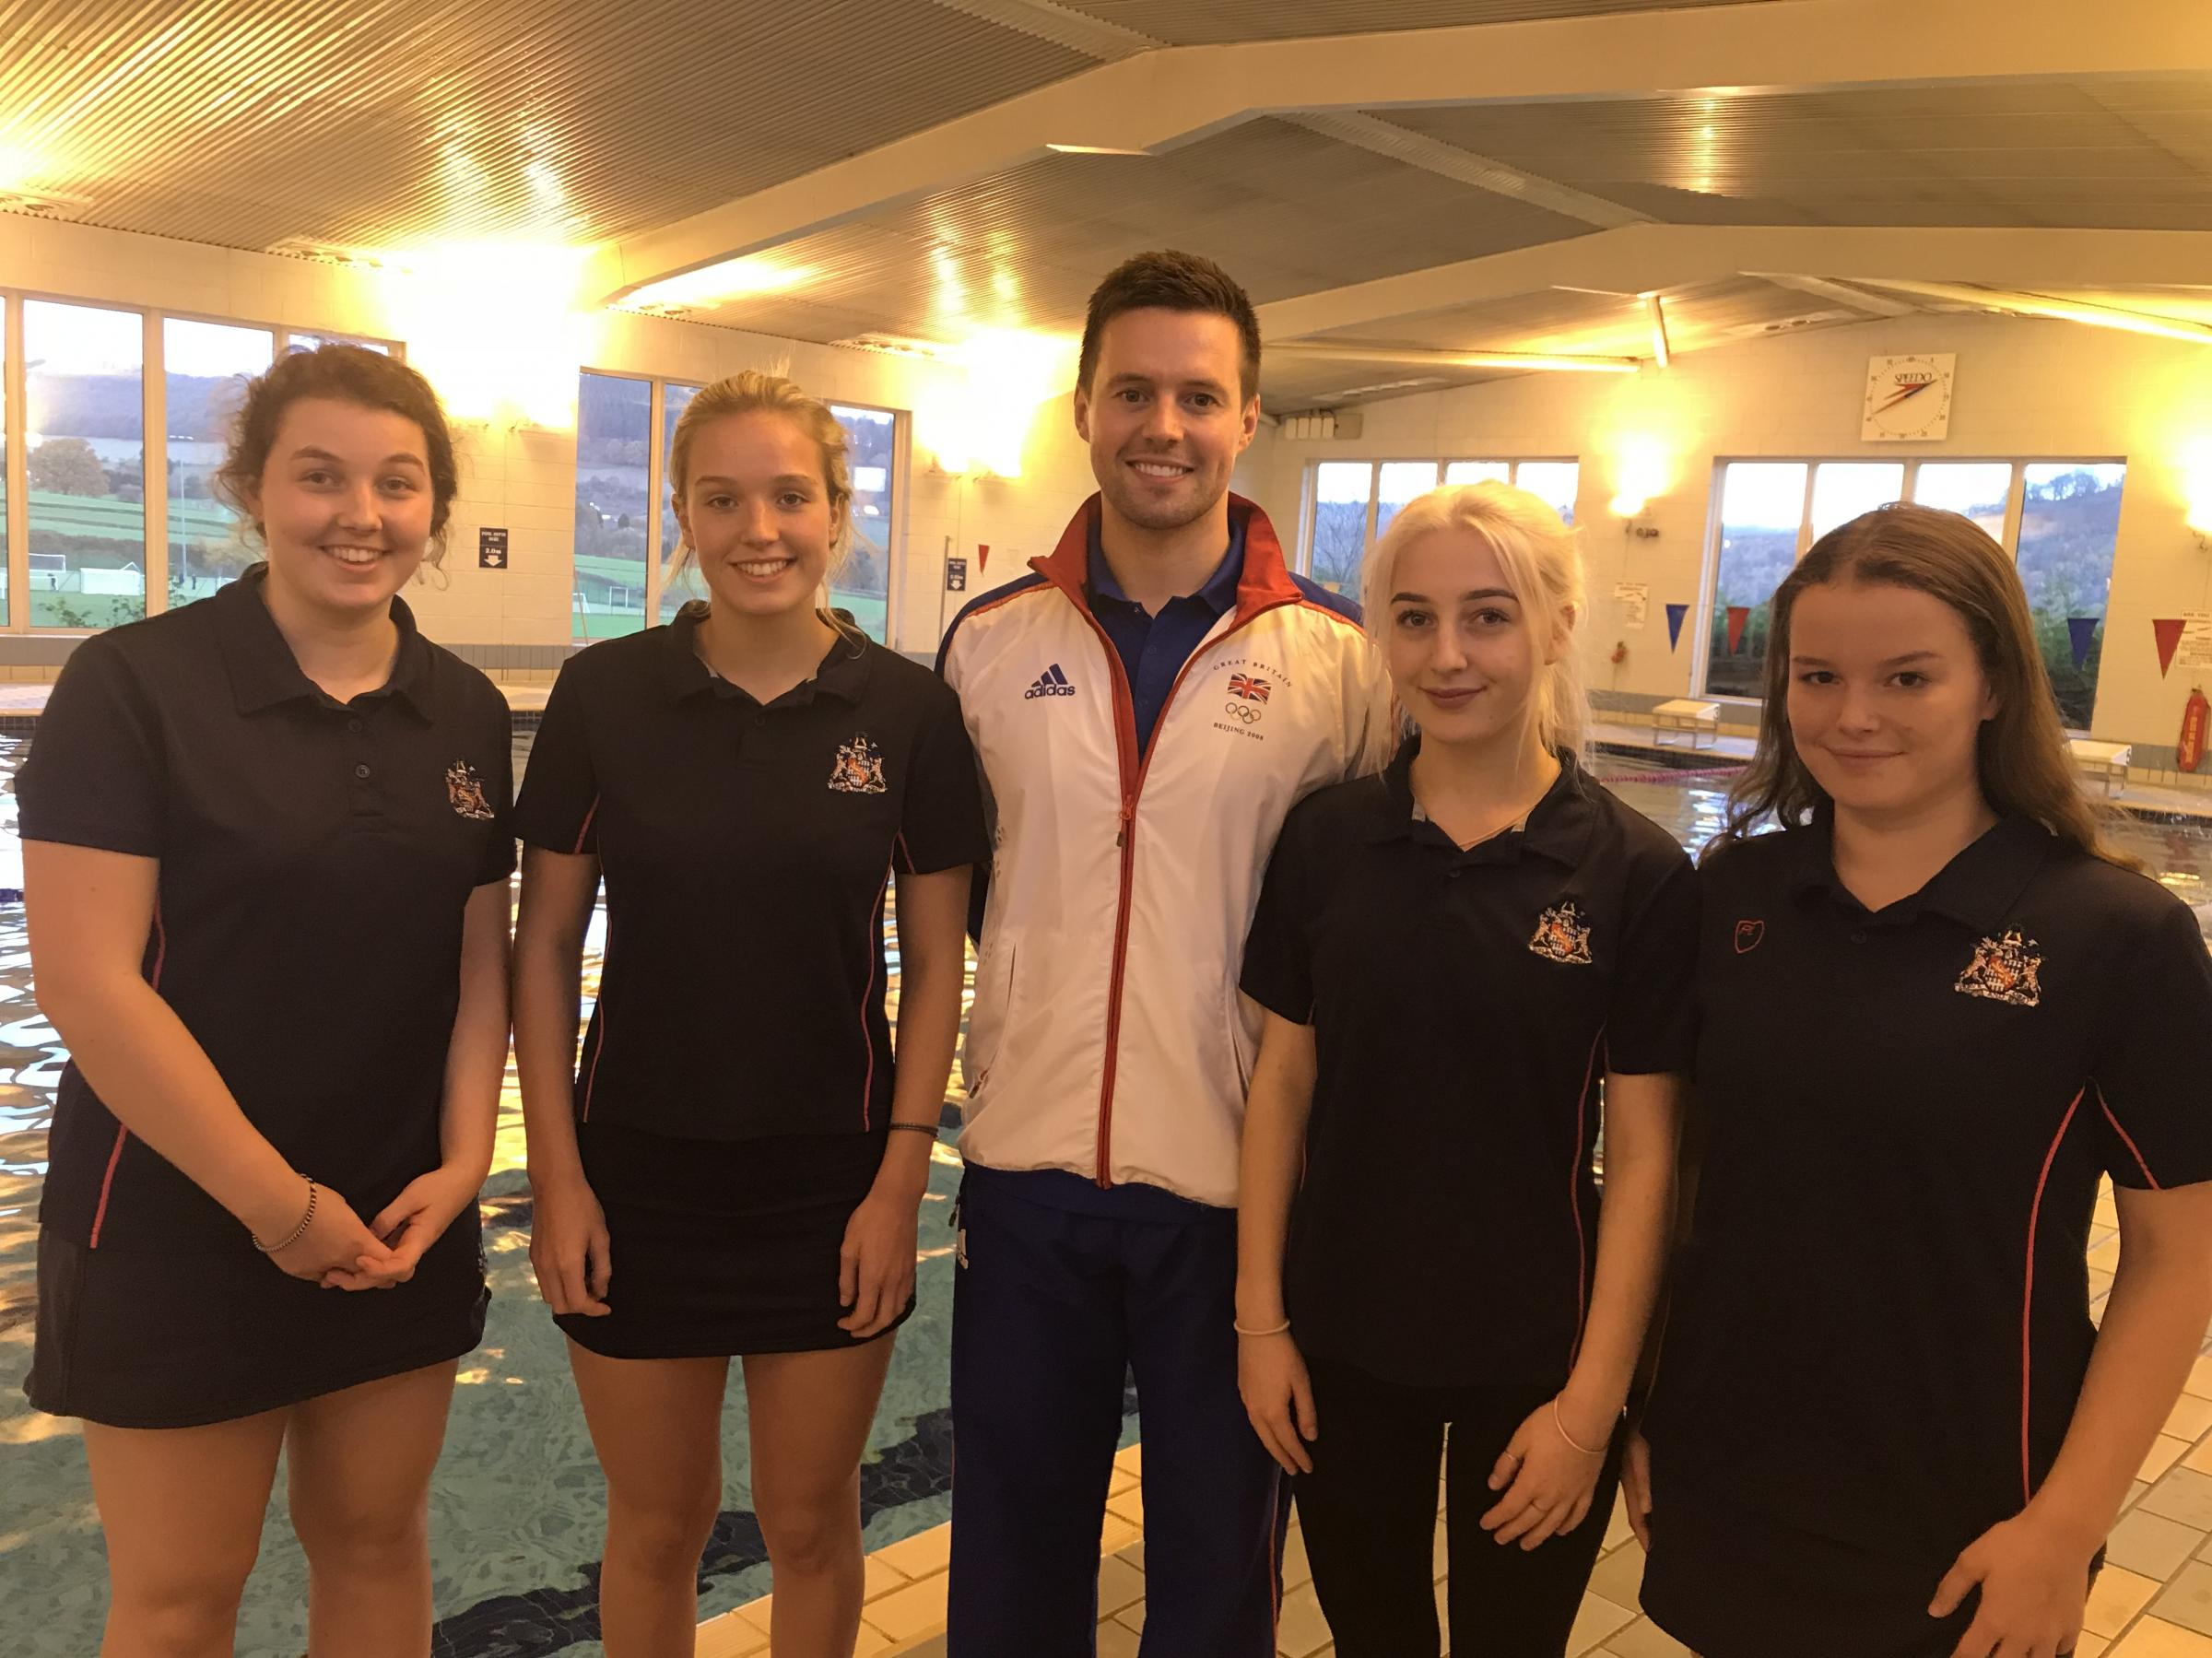 Herefordshire teenager, Caitlin Livingston (second from right), with former Olympic swimmer Thomas Haffield and fellow students Lucy Creasey, Ellie Horton and Eva Barry